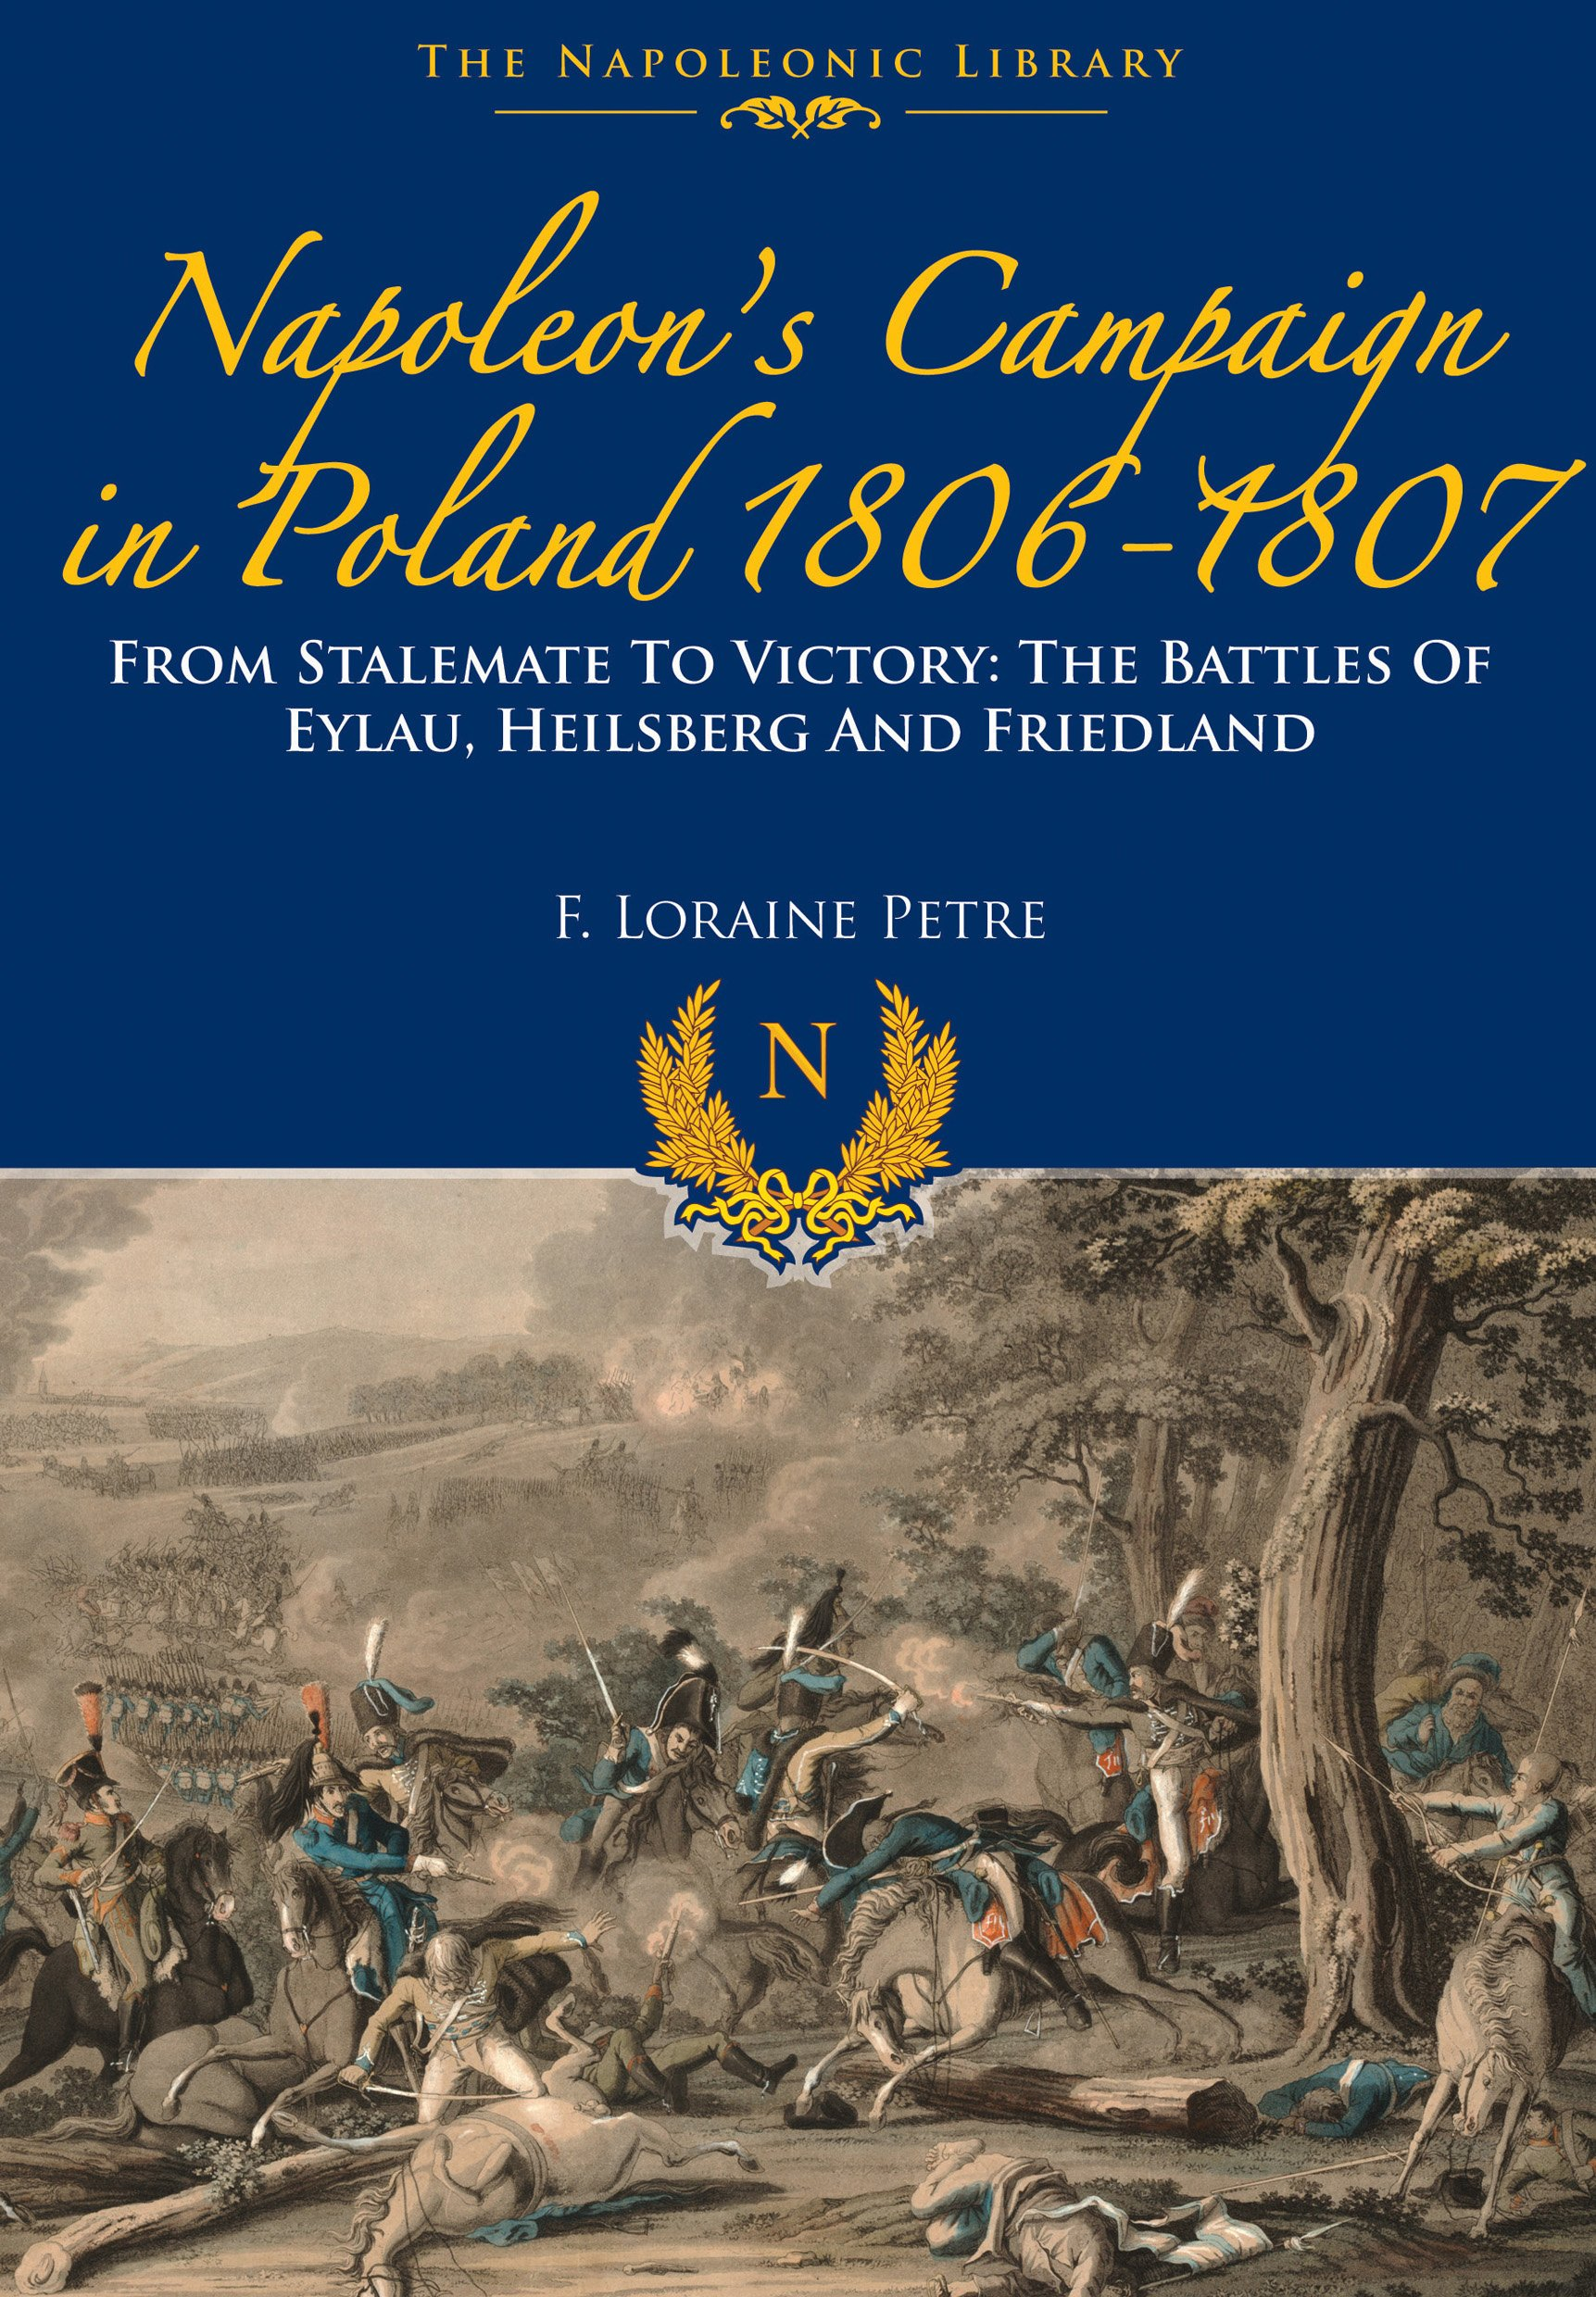 Napoleon's Campaign In Poland 1806-1807: From Stalemate to Victory: The Battles of Eylau, Heilsberg and Friedland (The Napoleonic Library)